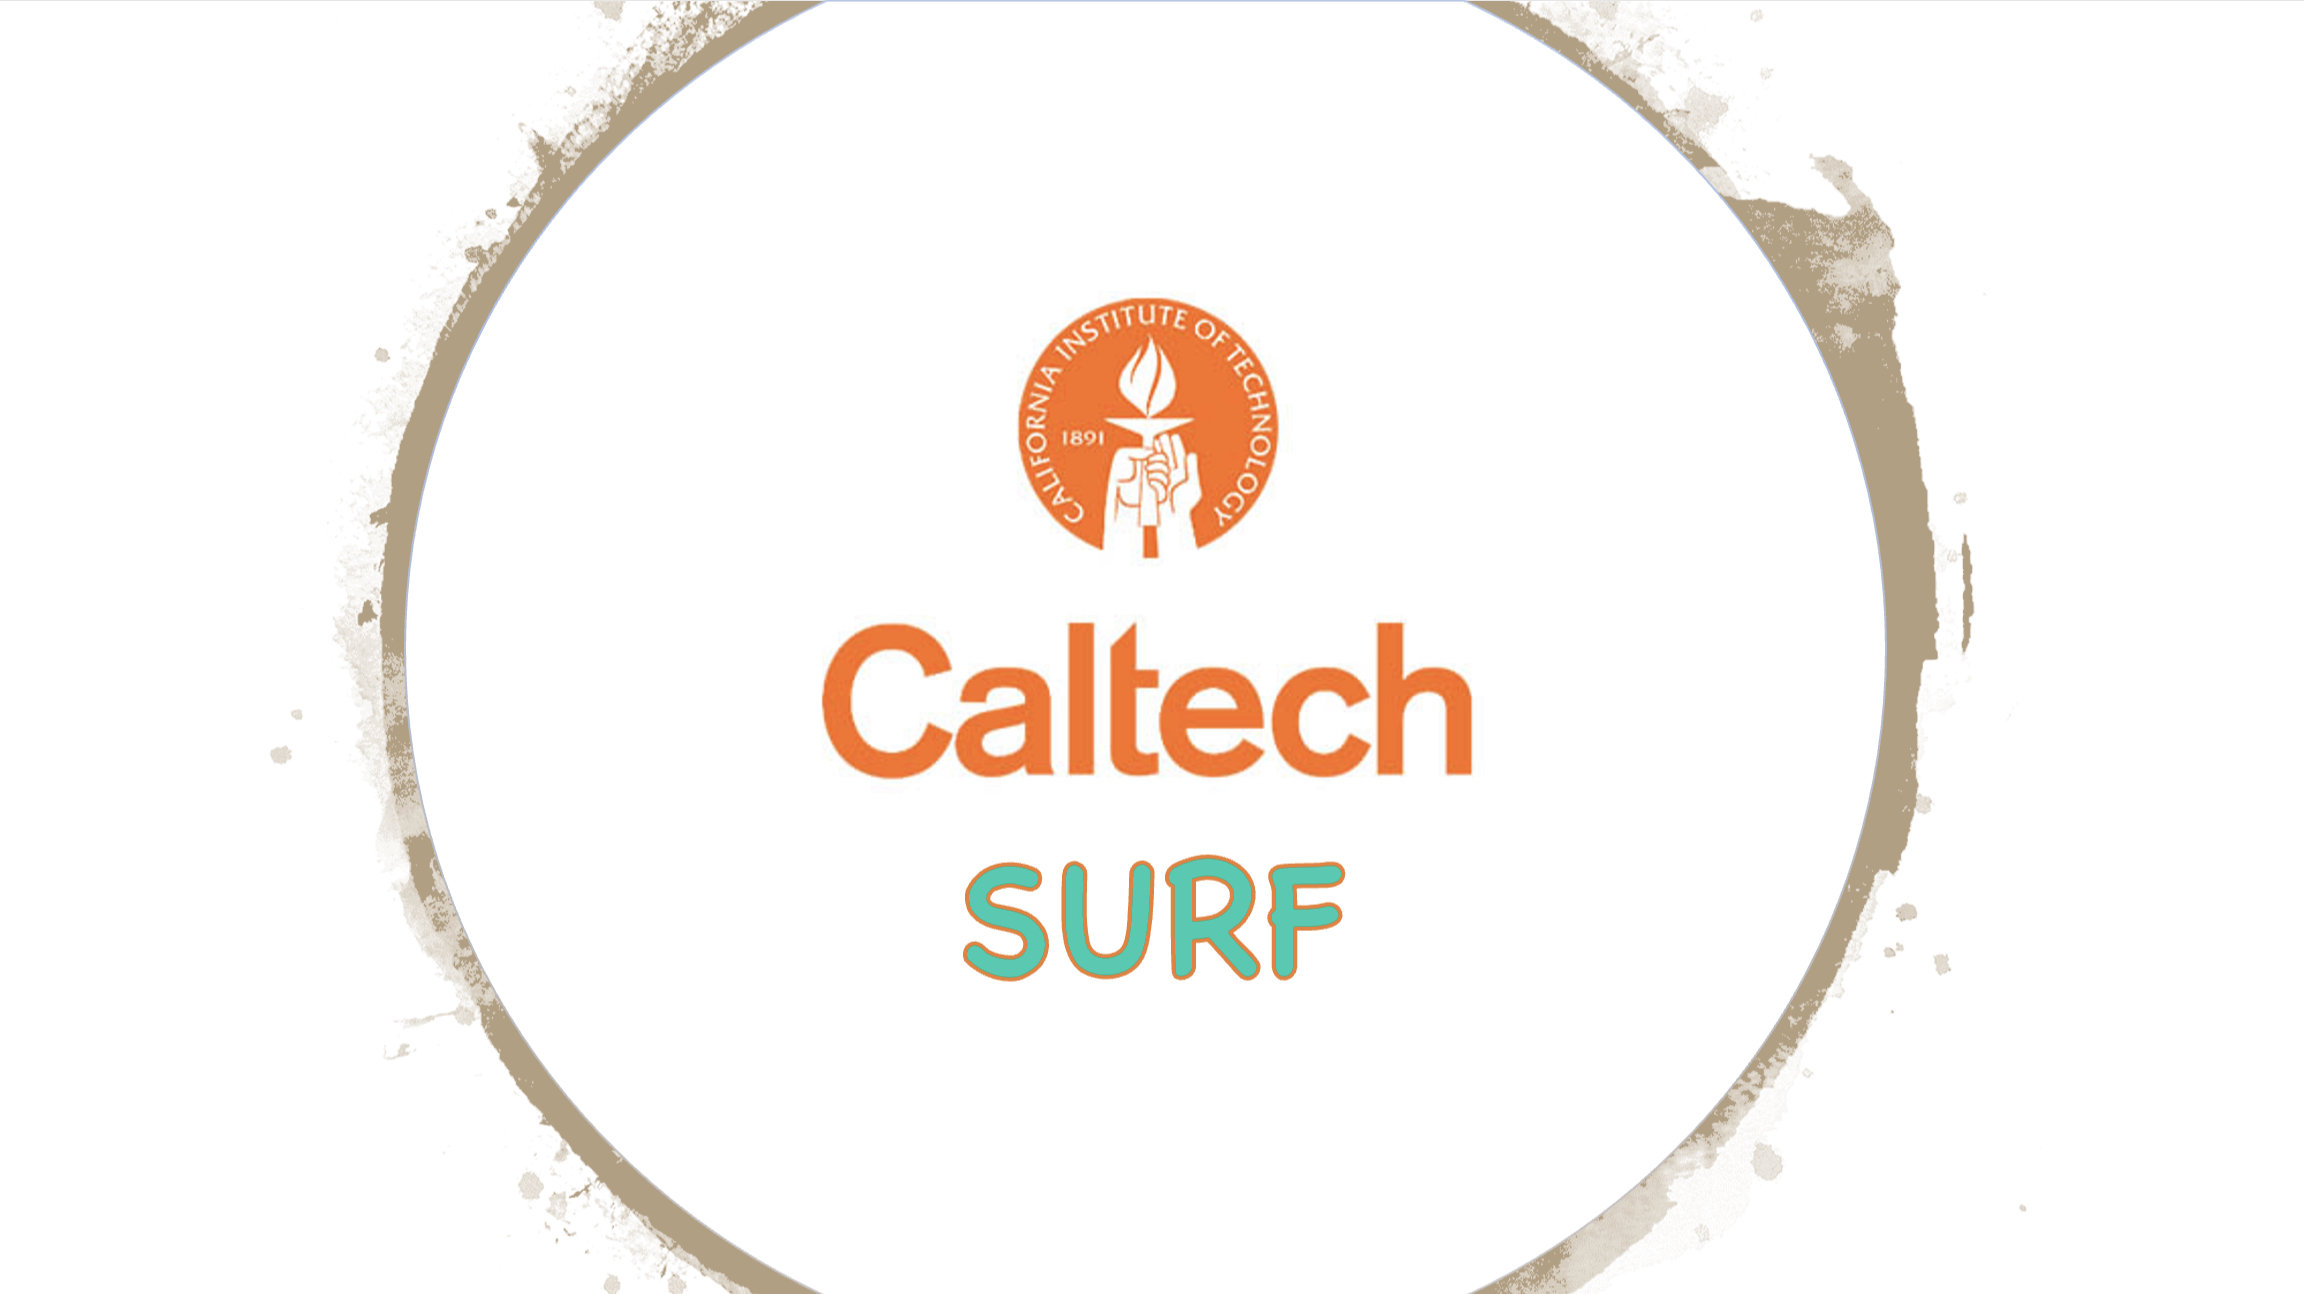 Applying for a Caltech SURF!